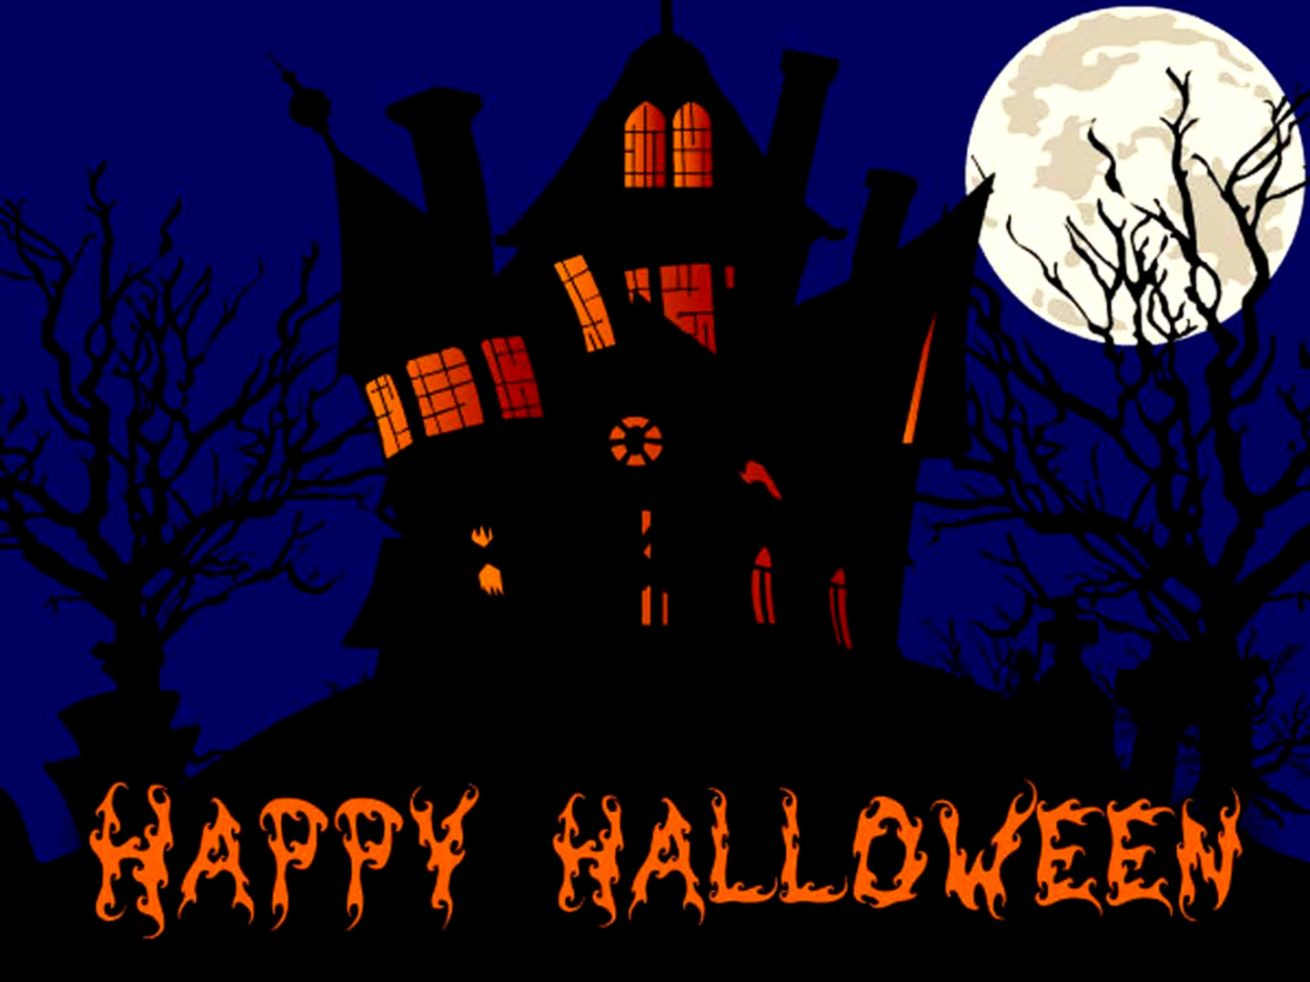 Happy Halloween Images And Wallpapers 2015Happy Halloween Pictures